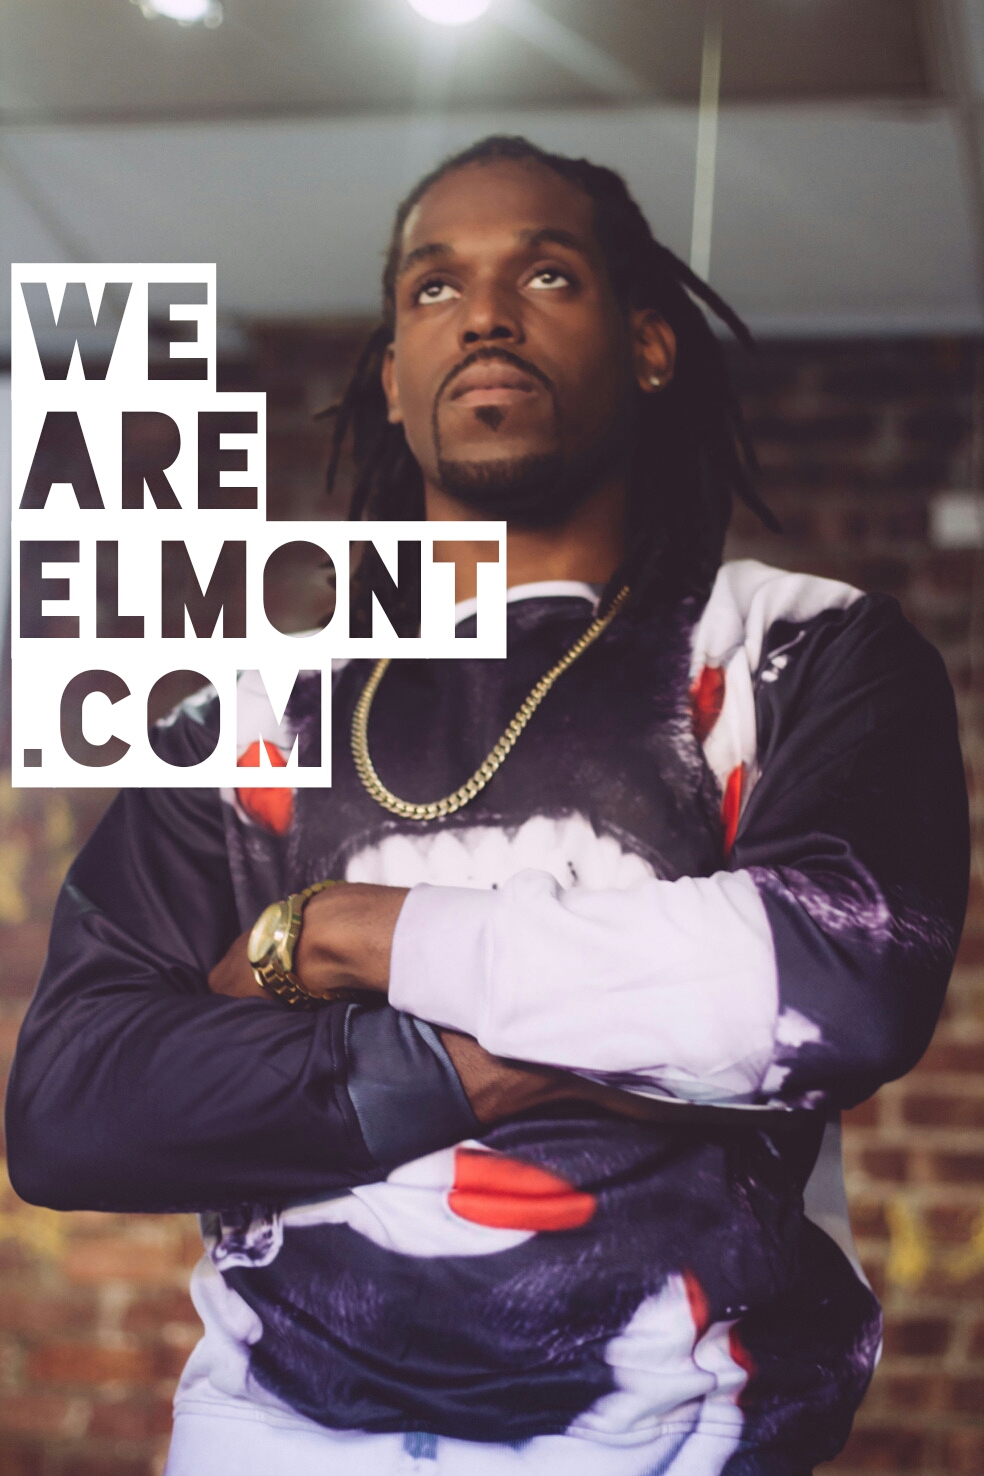 JoeBe Music Artist The Elmont Excelsior